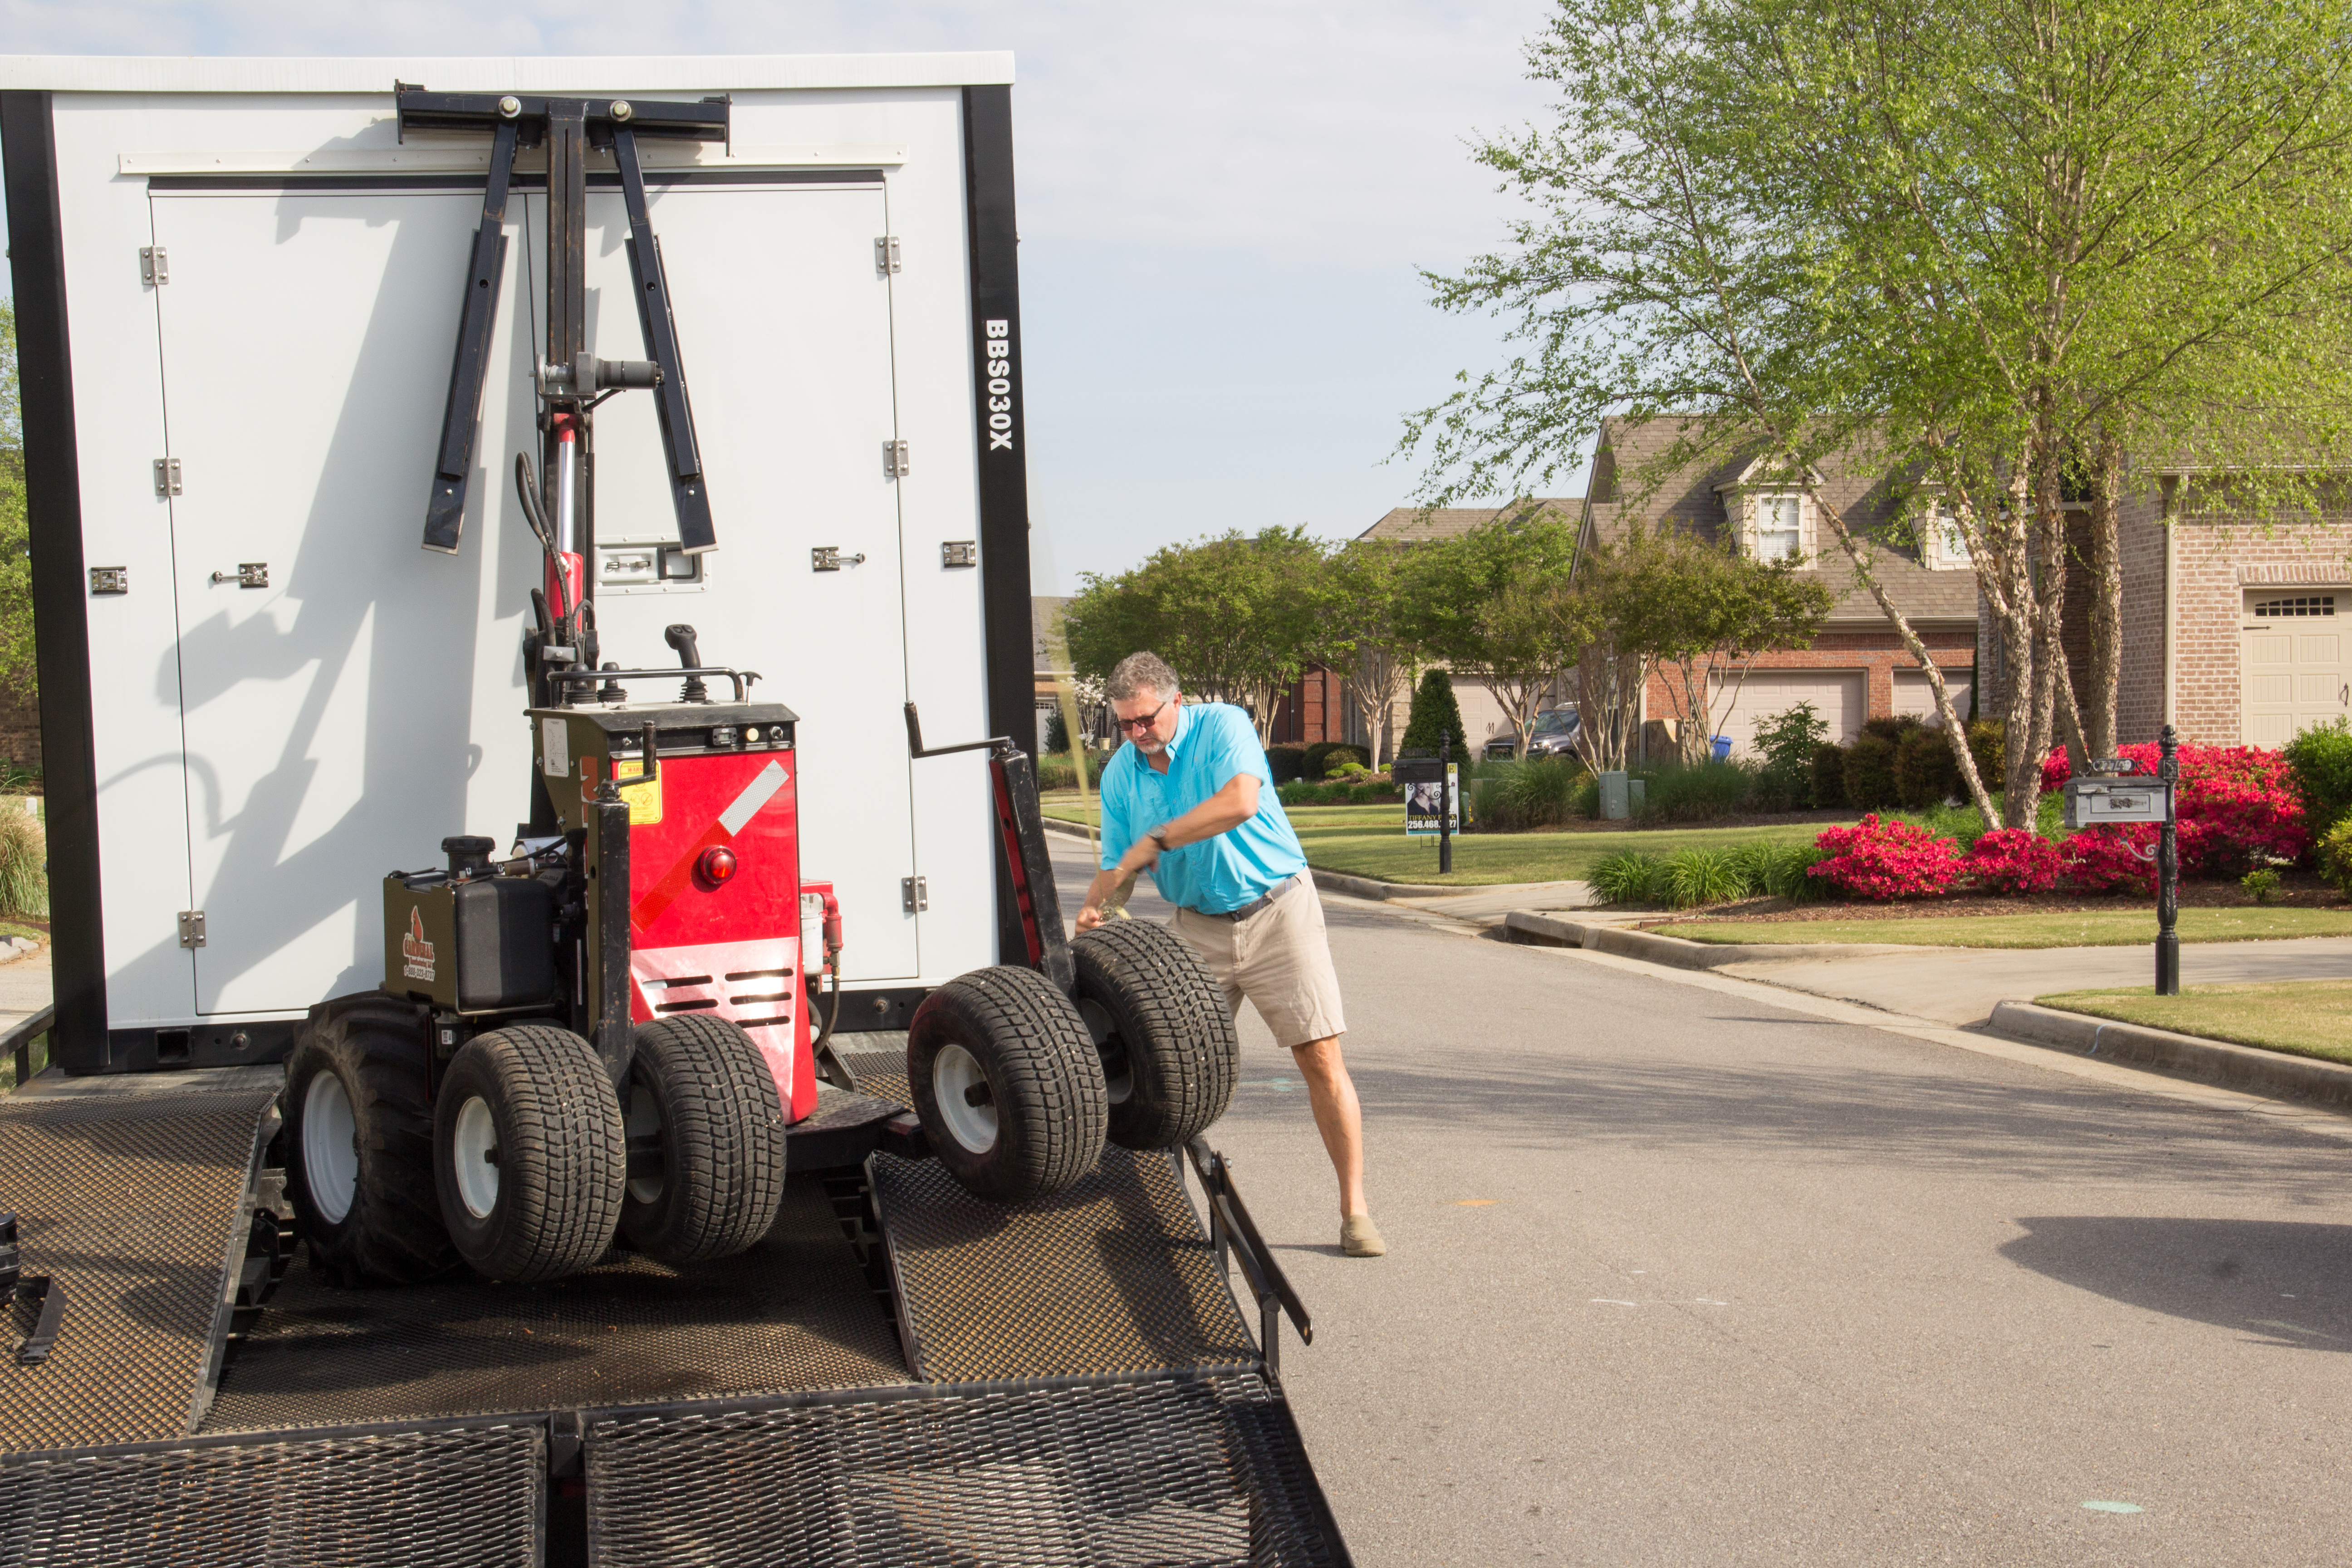 Moving House 101: Portable moving containers vs. rental trucks (Part 2)